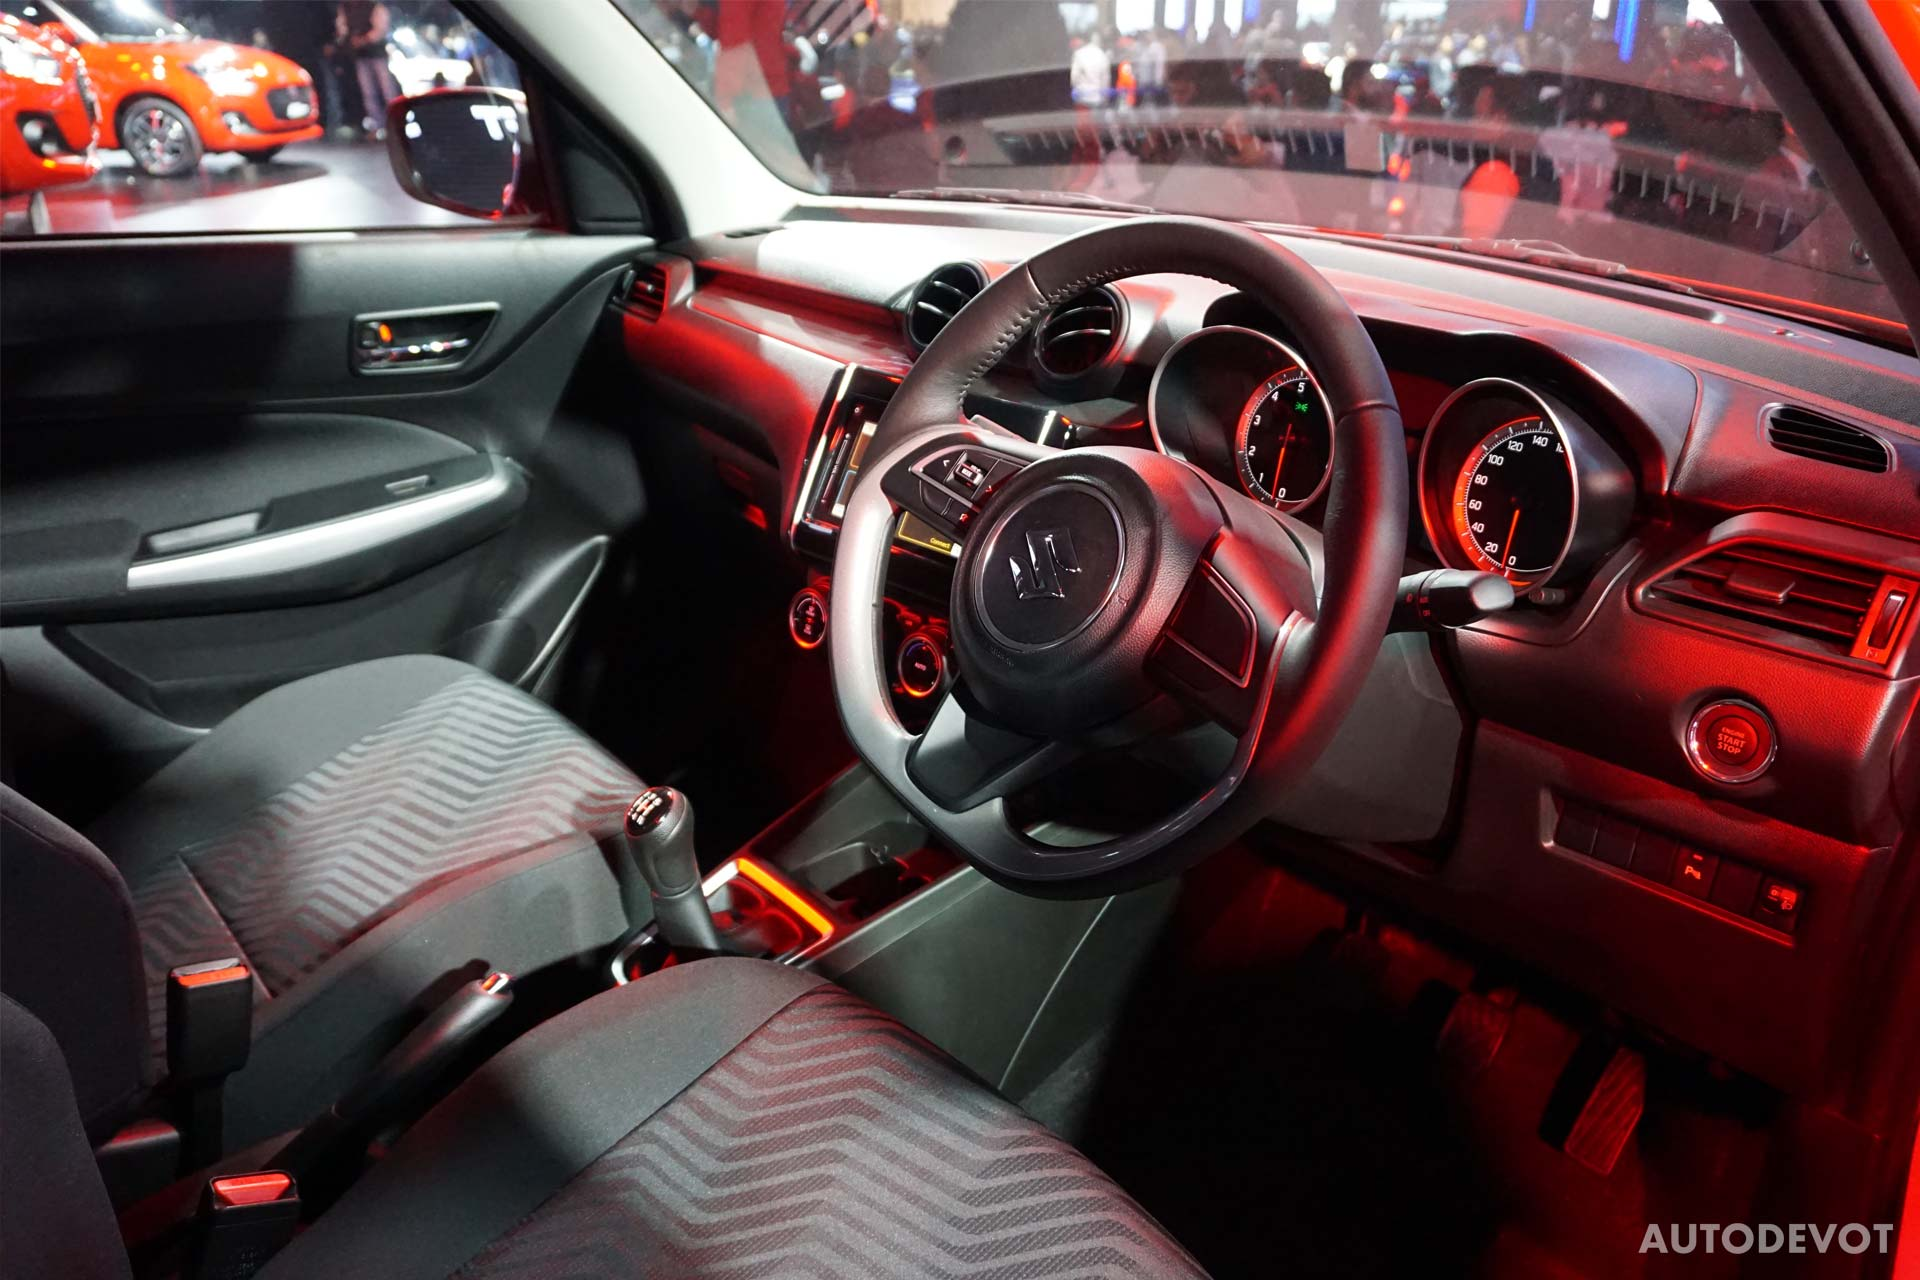 2018-Maruti-Suzuki-Swift-interior